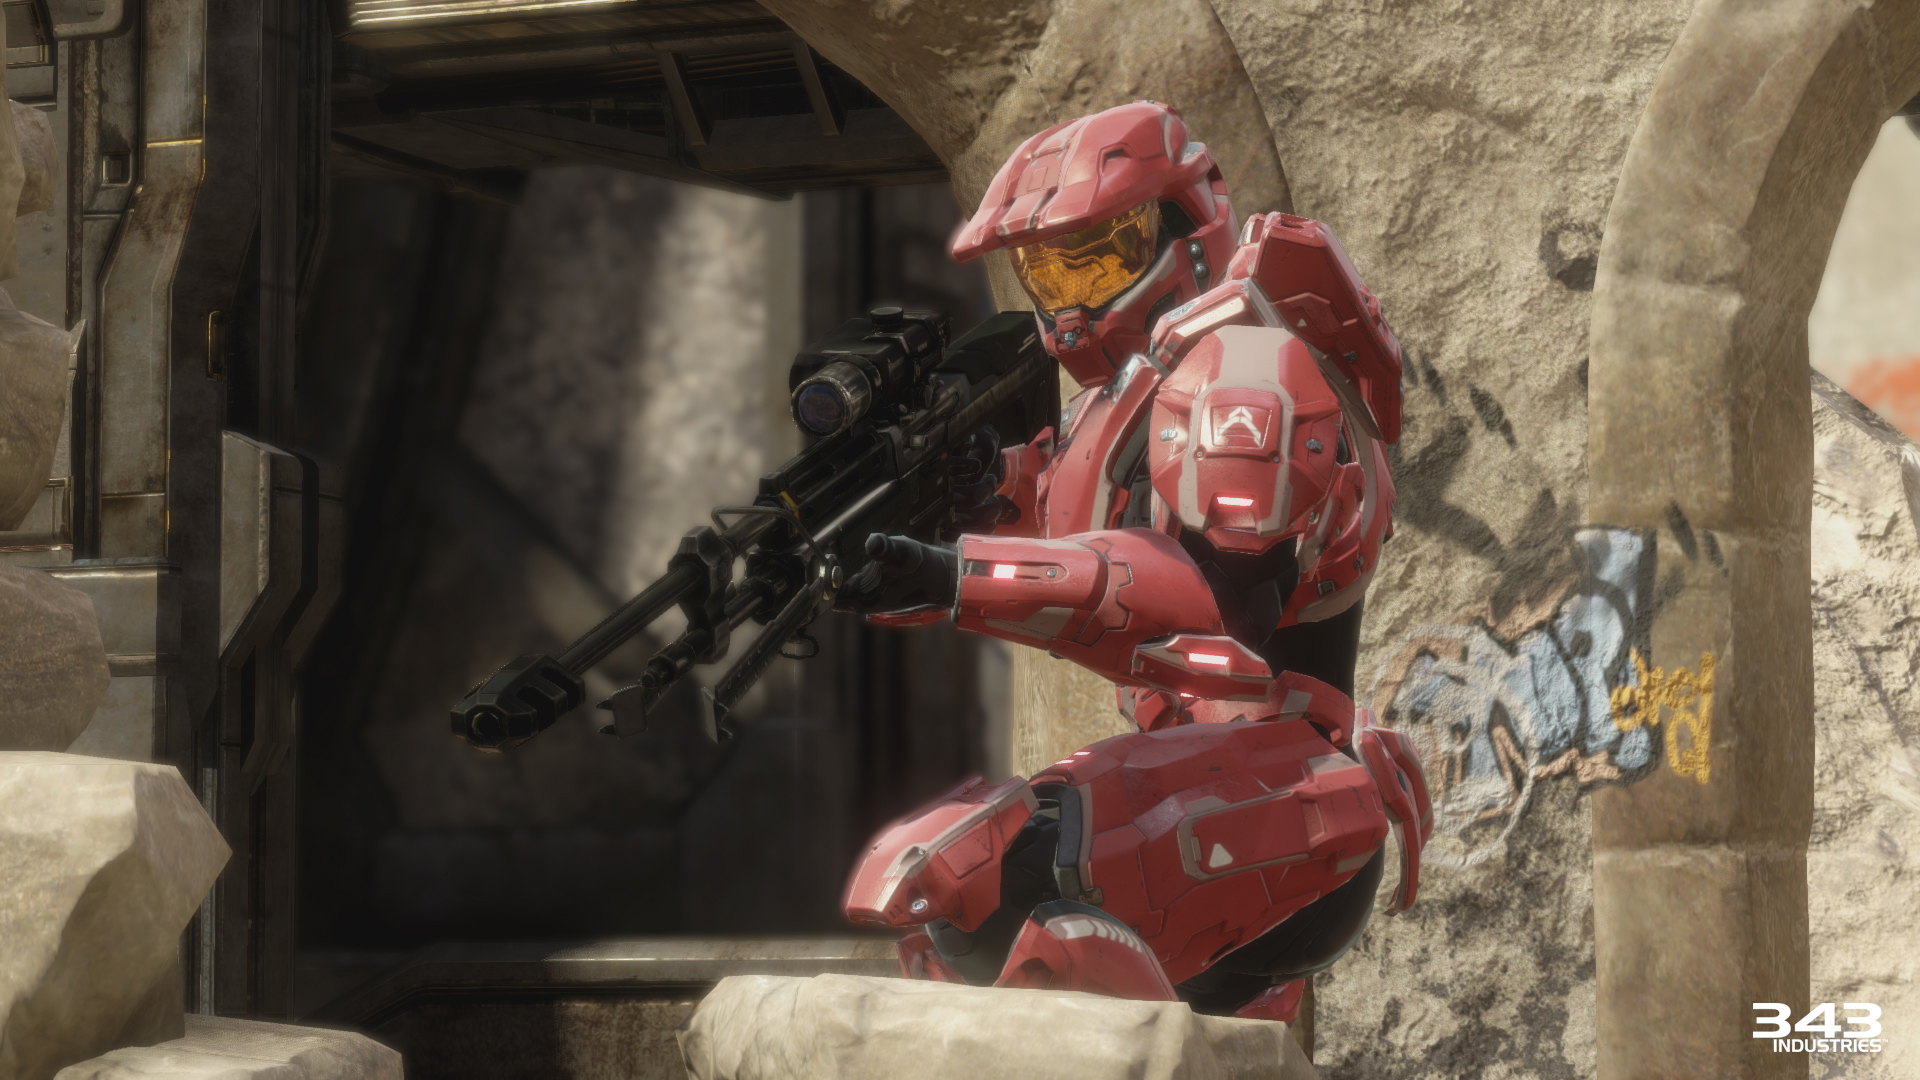 halo mcc matchmaking news The multiplayer ranks in halo: the master chief collection will be officially reset once all the matchmaking issues that have plagued the game's different online modes are fixed, according to developer 343 industries.